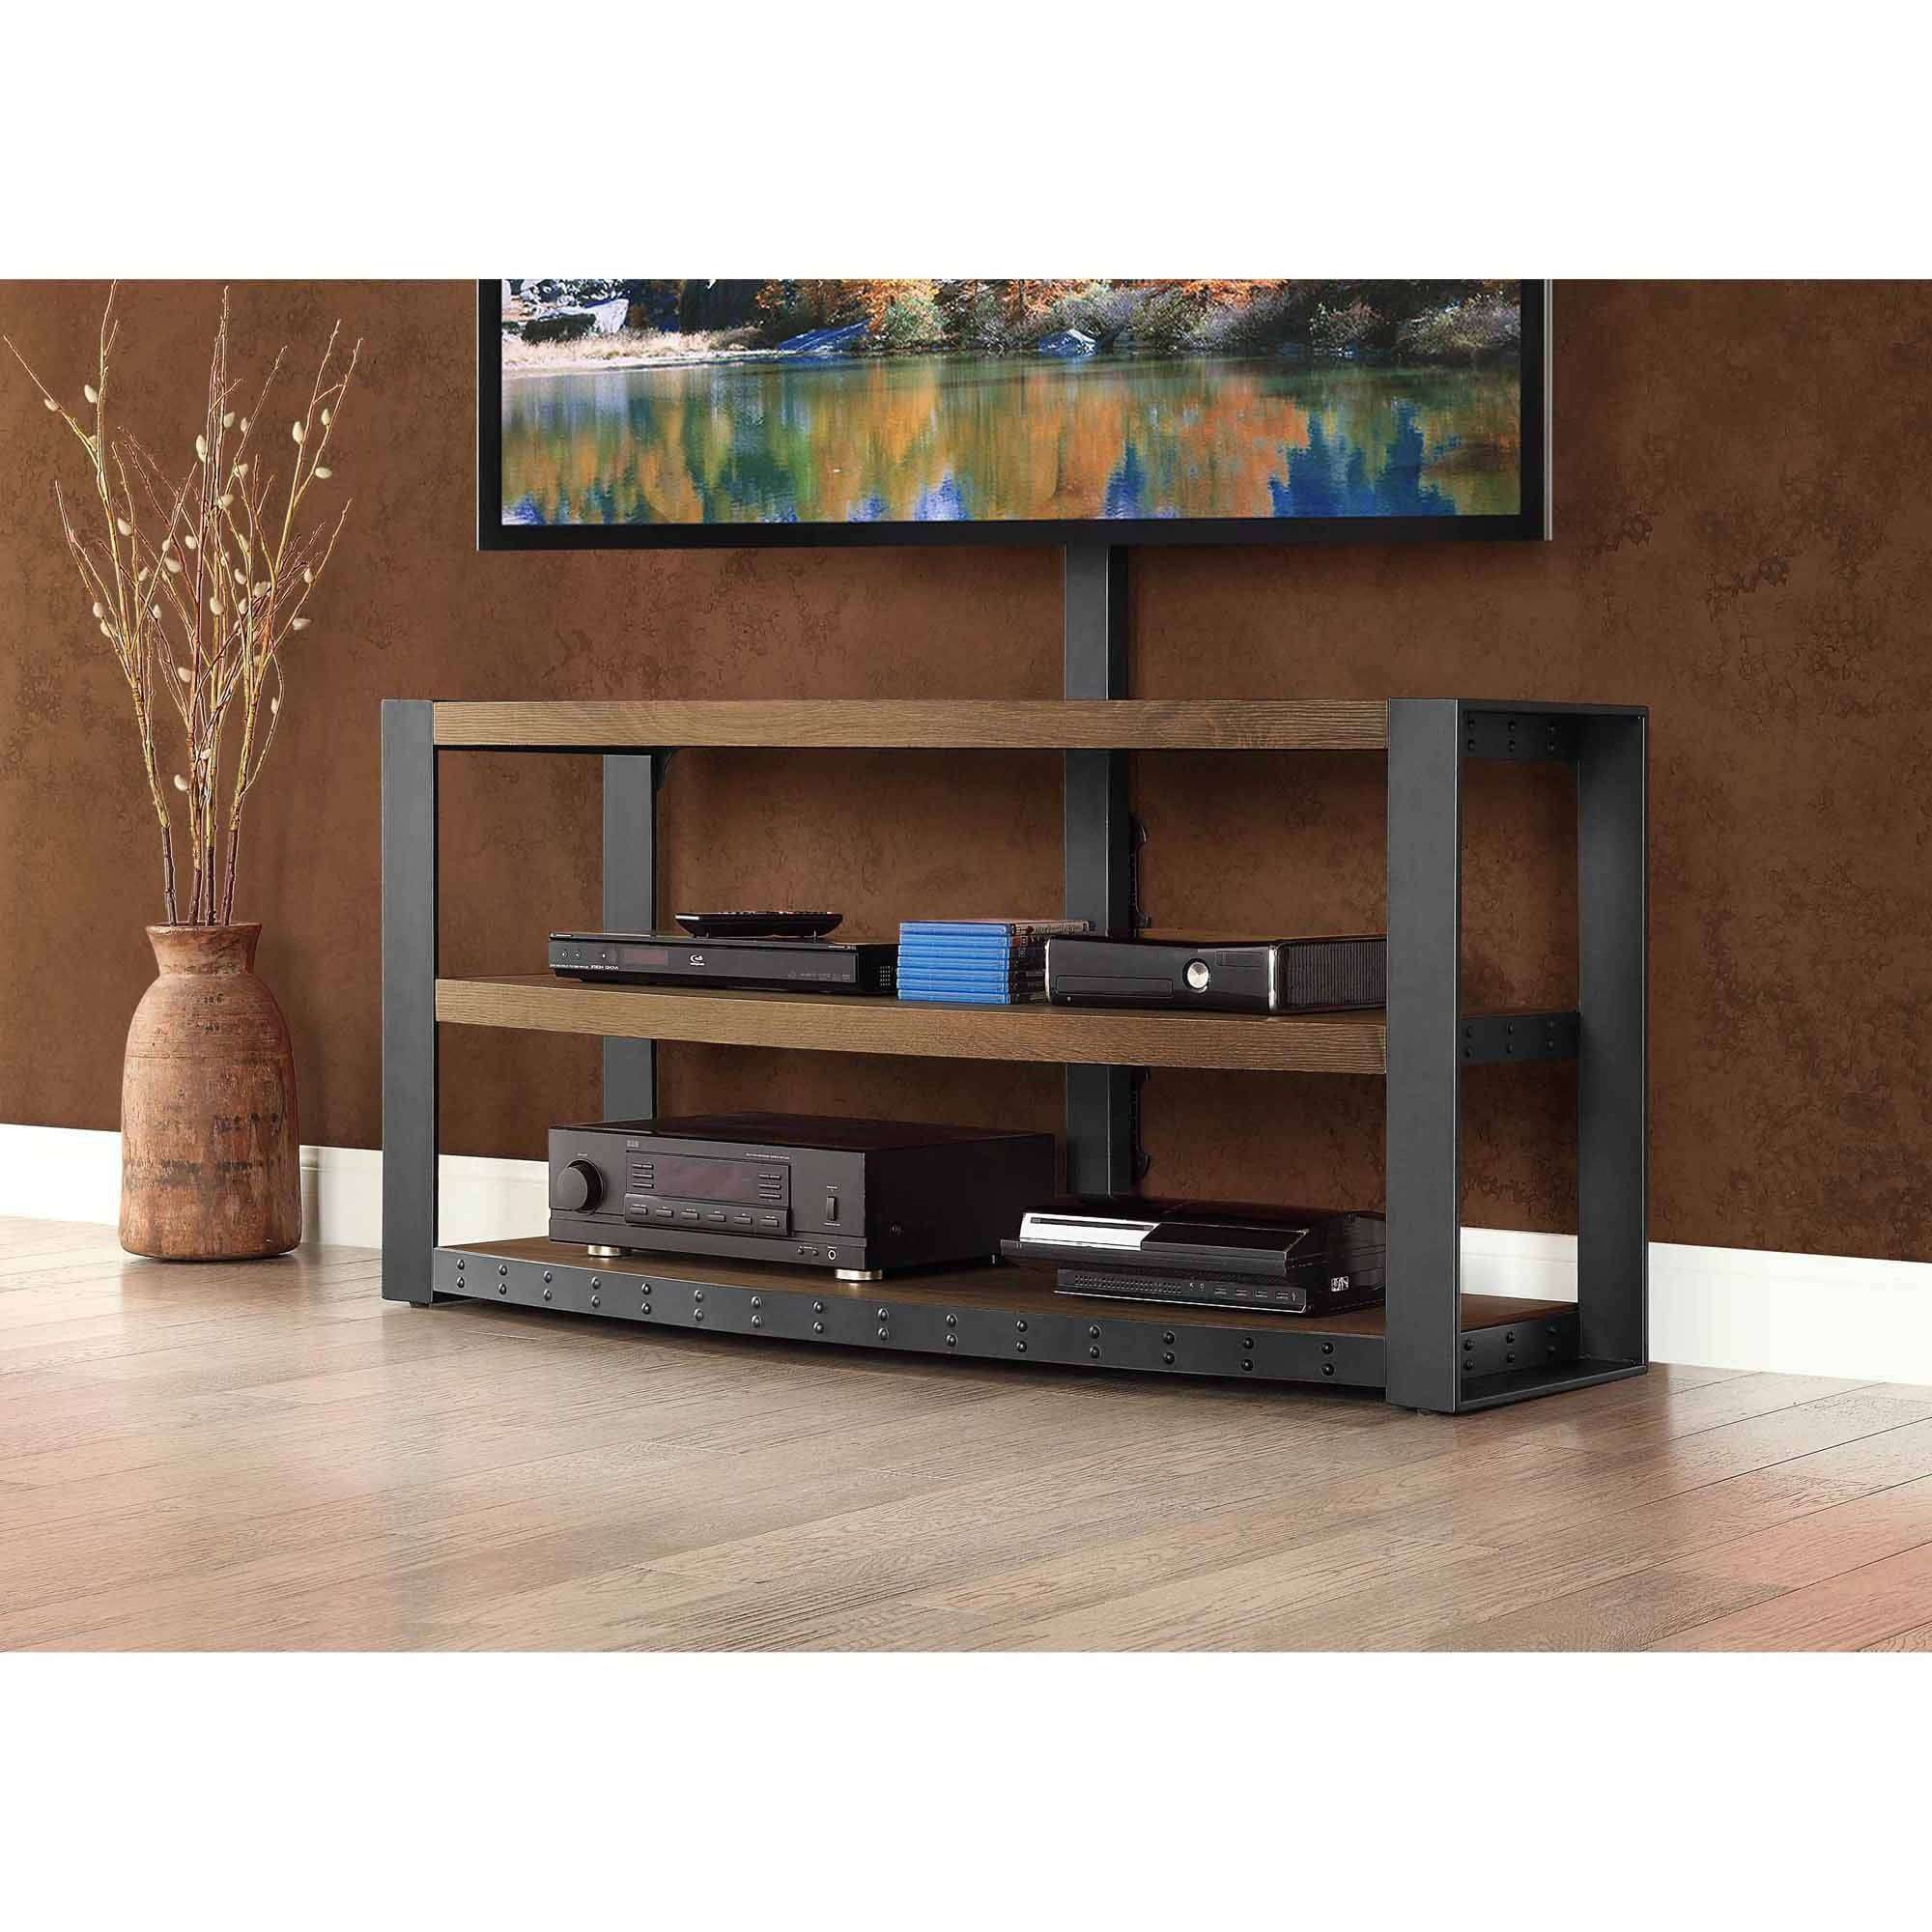 """Whalen Santa Fe 3 In 1 Tv Stand For Tvs Up To 65"""", Warm Ash Finish Regarding Brown Tv Stands (View 4 of 20)"""